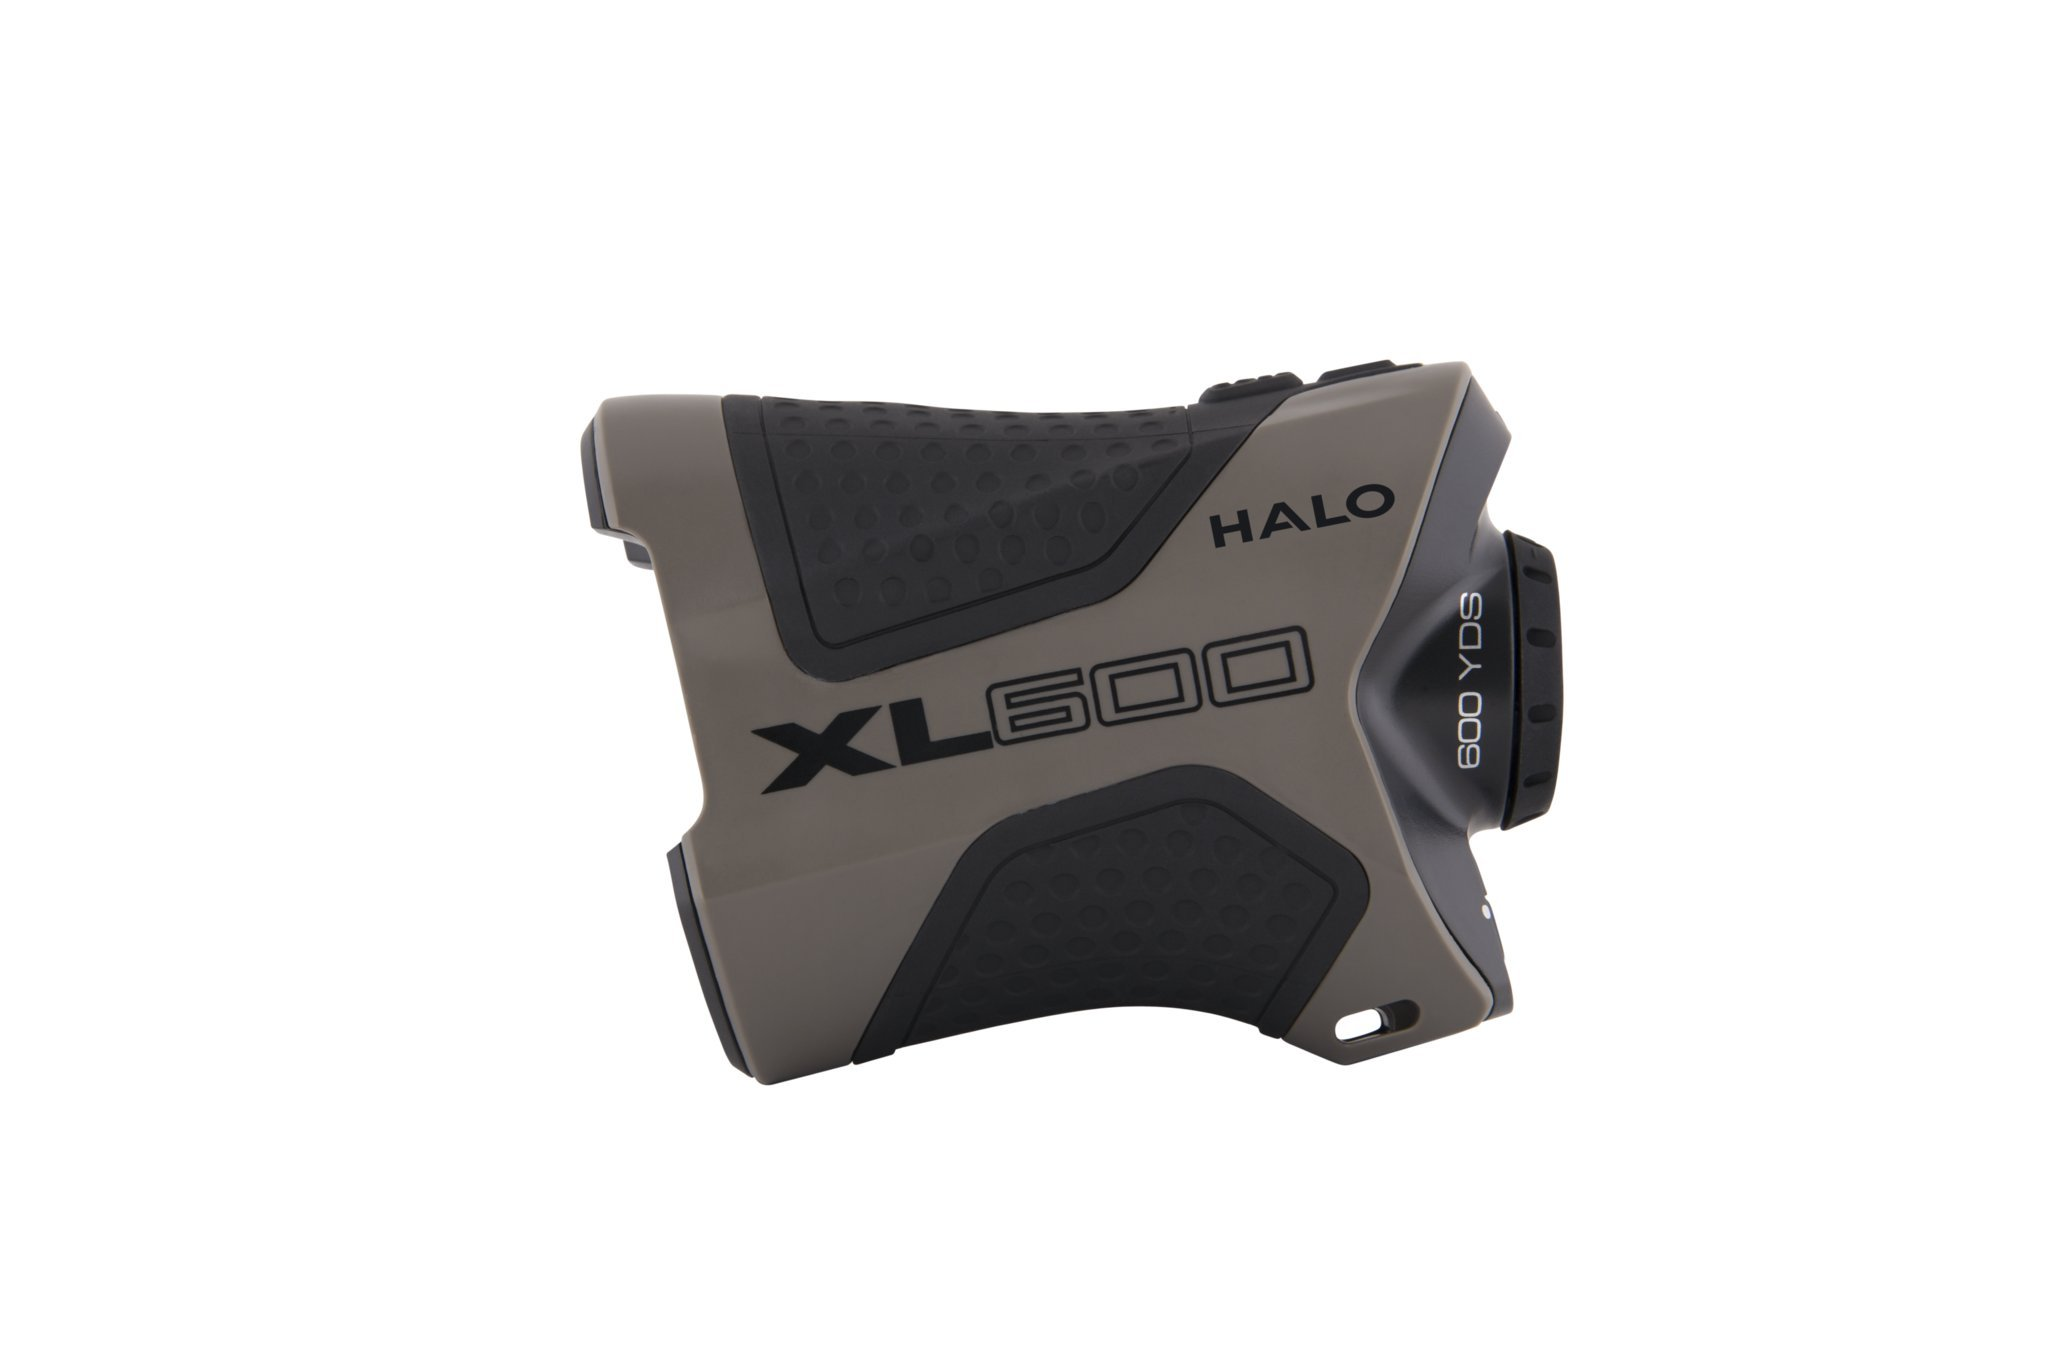 Halo XL600-8 Hunting Scopes Range Finders by Halo